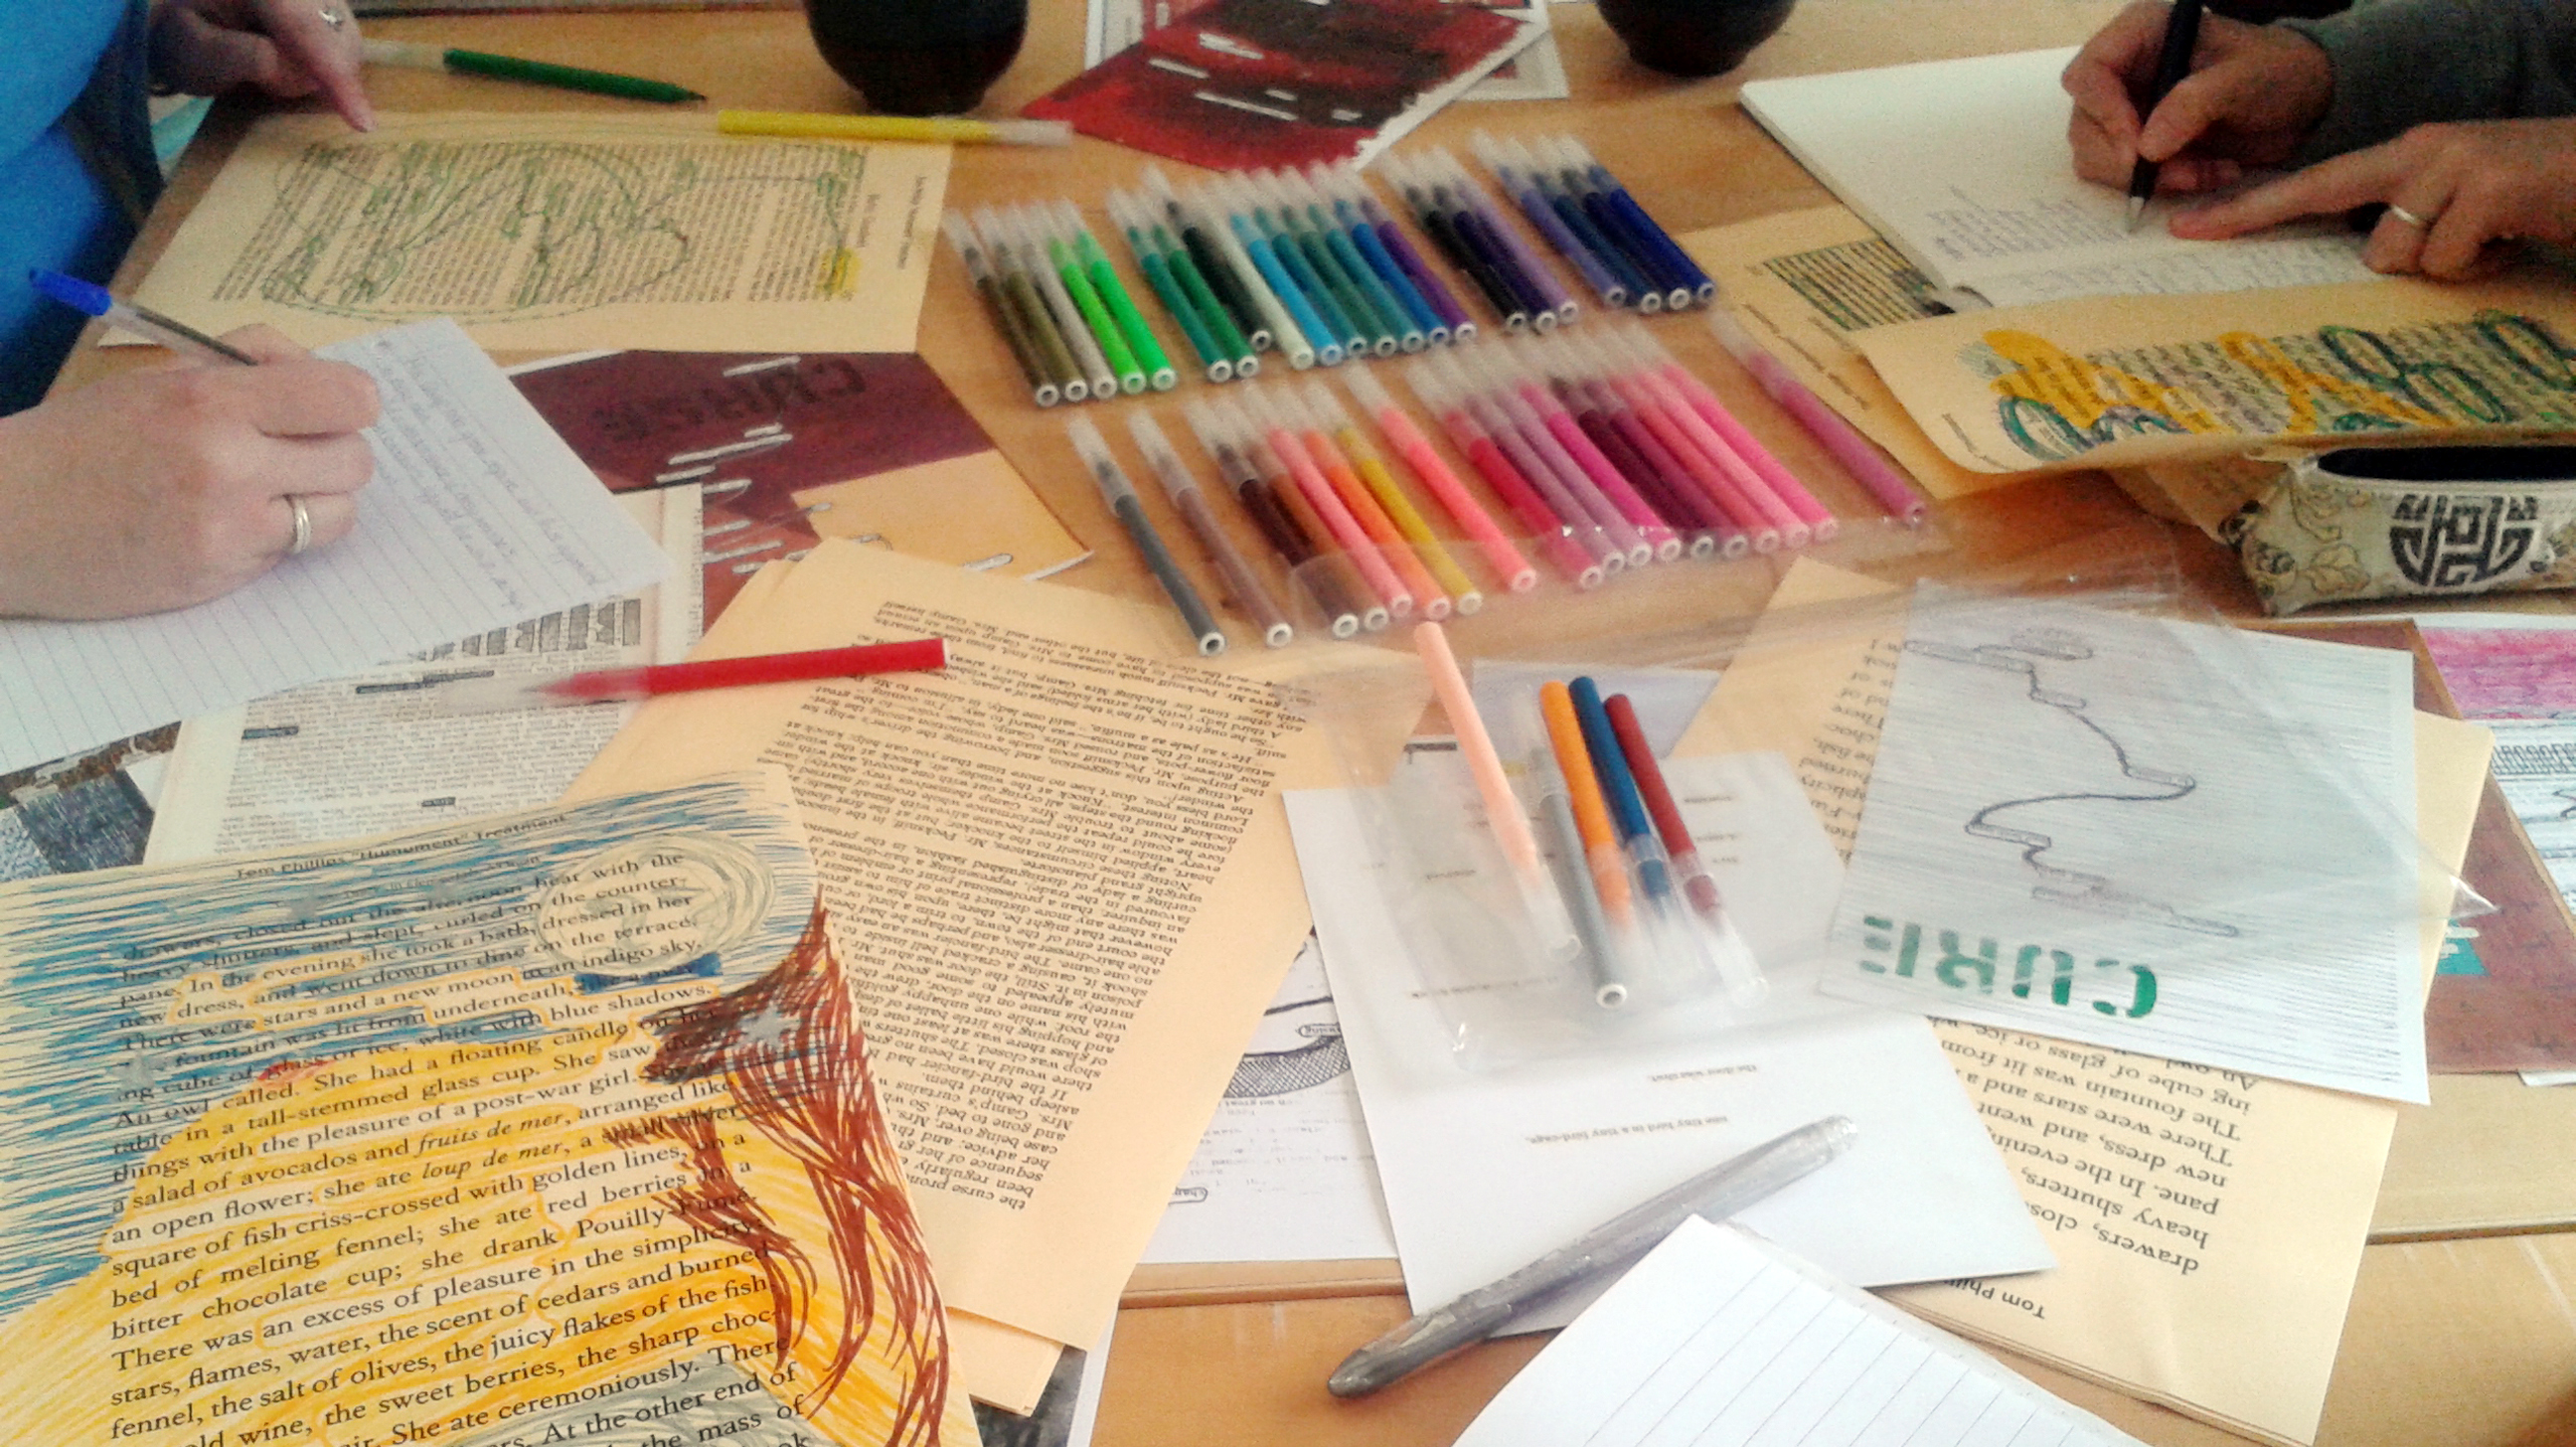 Creativity writing workshop